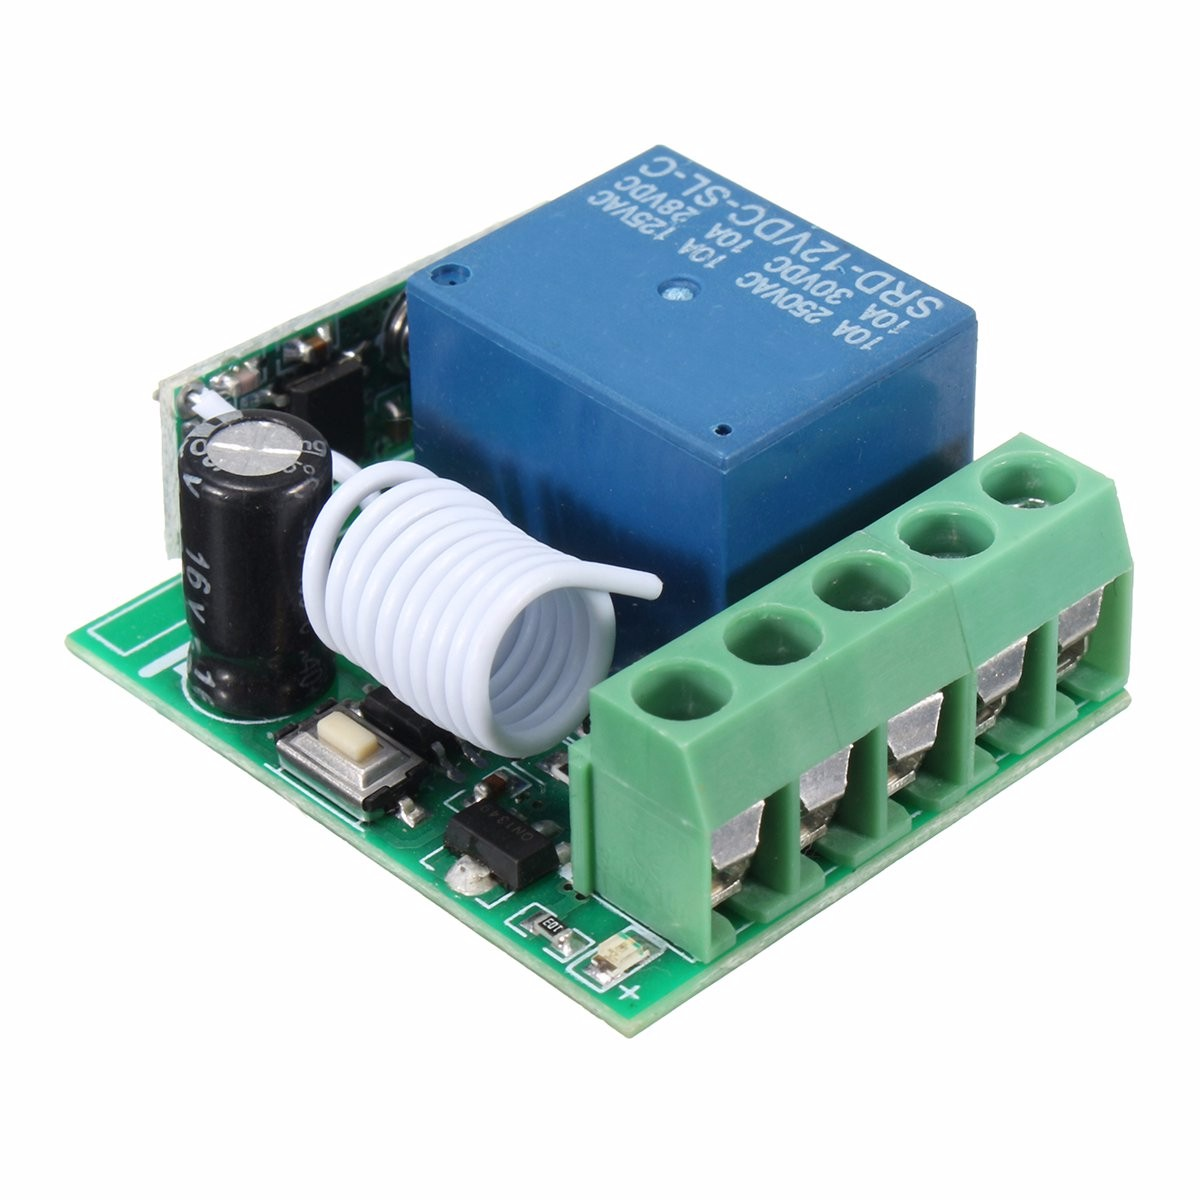 1PC New Arrival 315MHz 12V 1 Channel Power Supply Wireless Remote Control Relay Switch Self Lock RC Module Board image